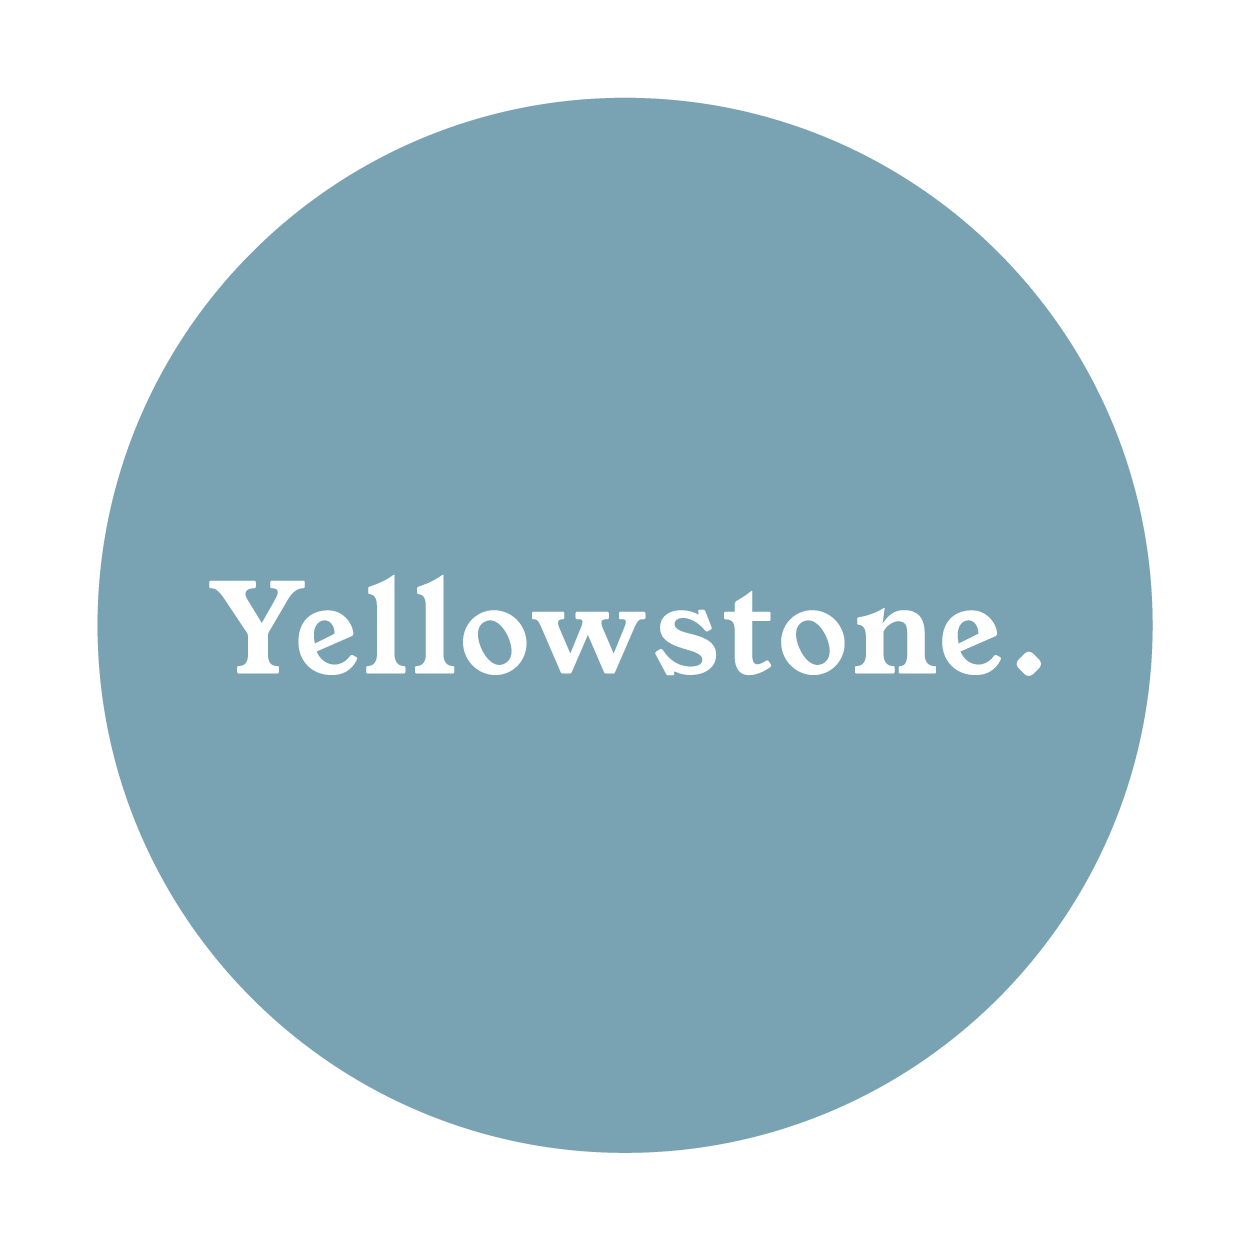 Yellowstone_Primary.png